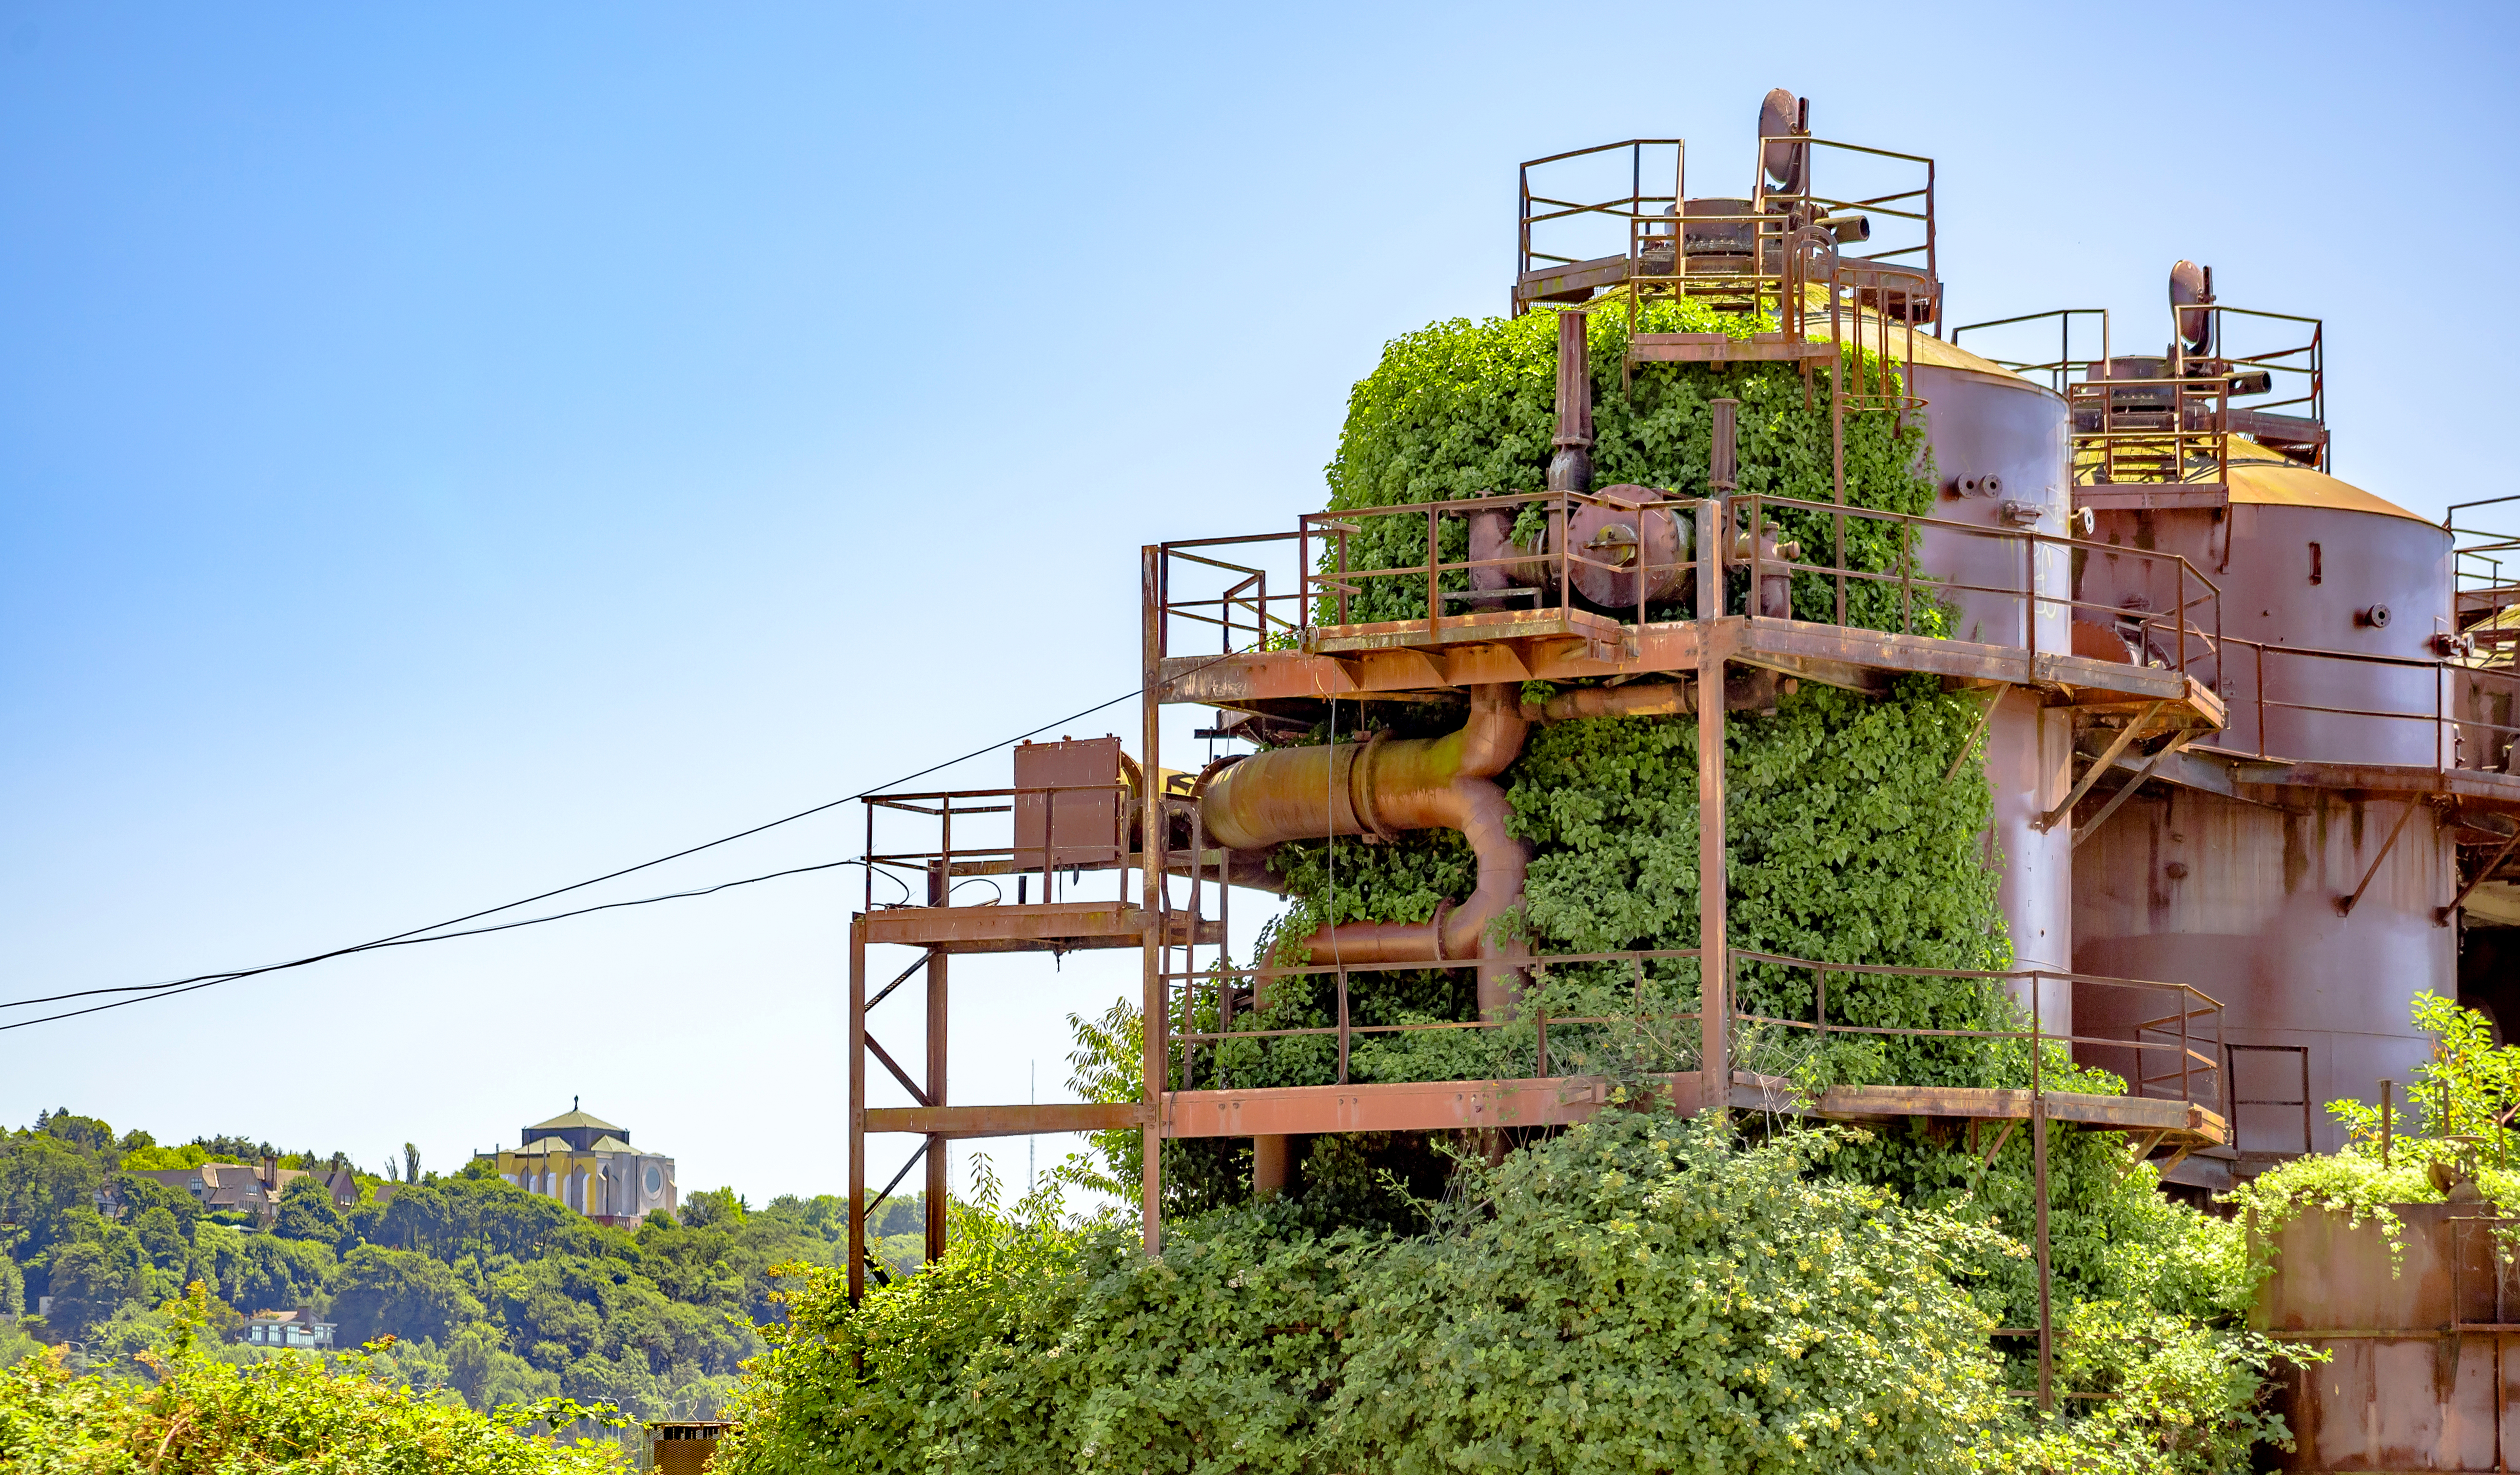 Gas Works Park is a beautiful way to remember a toxic past